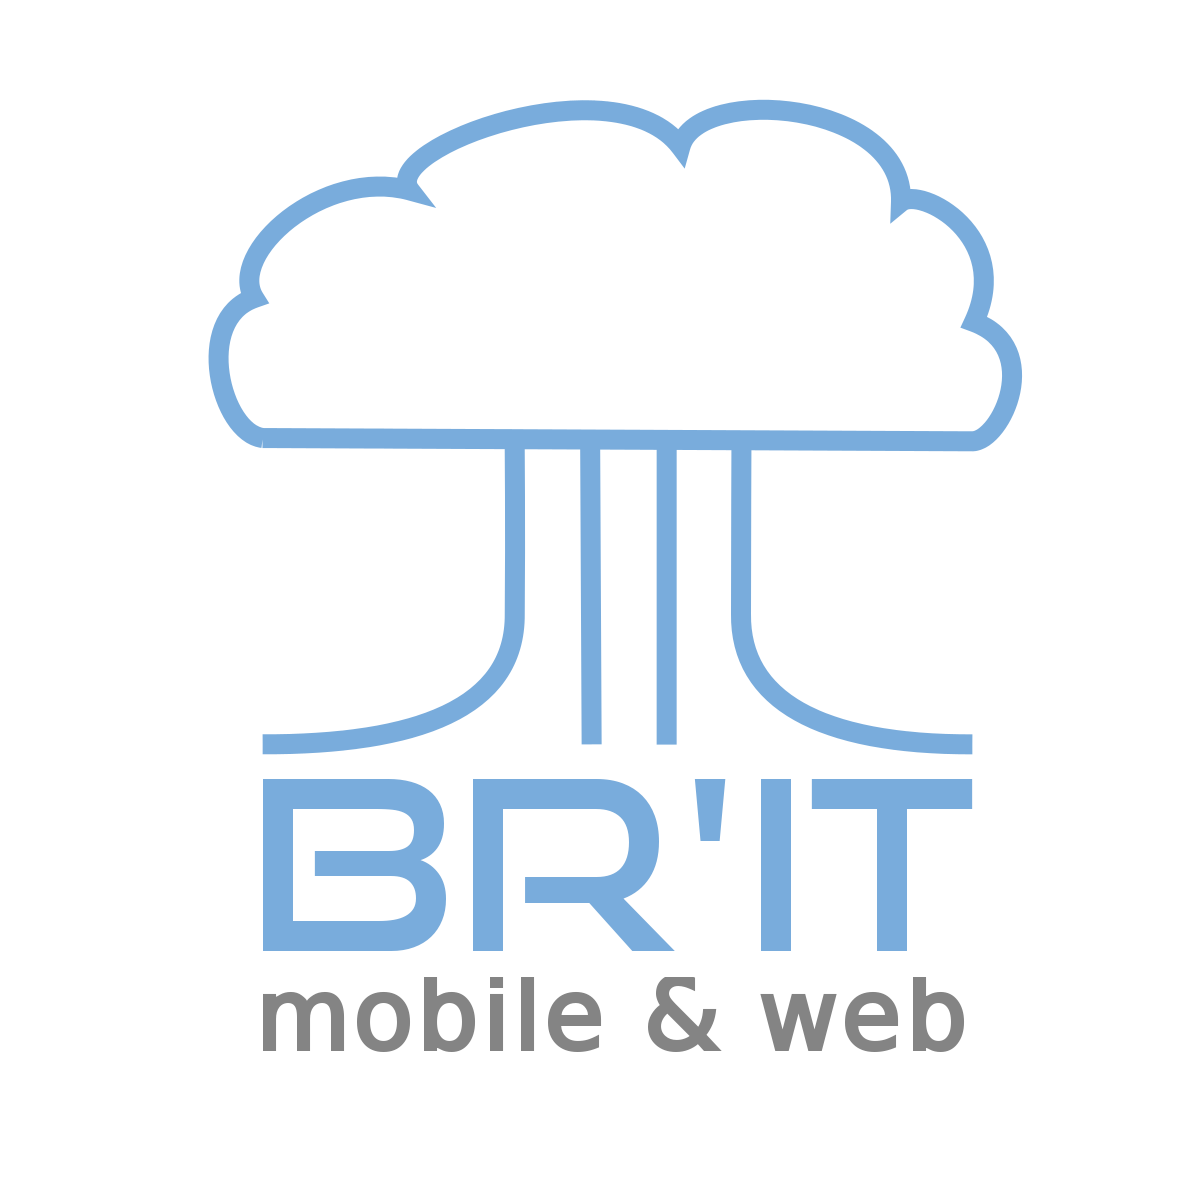 BR'IT Mobile & Web